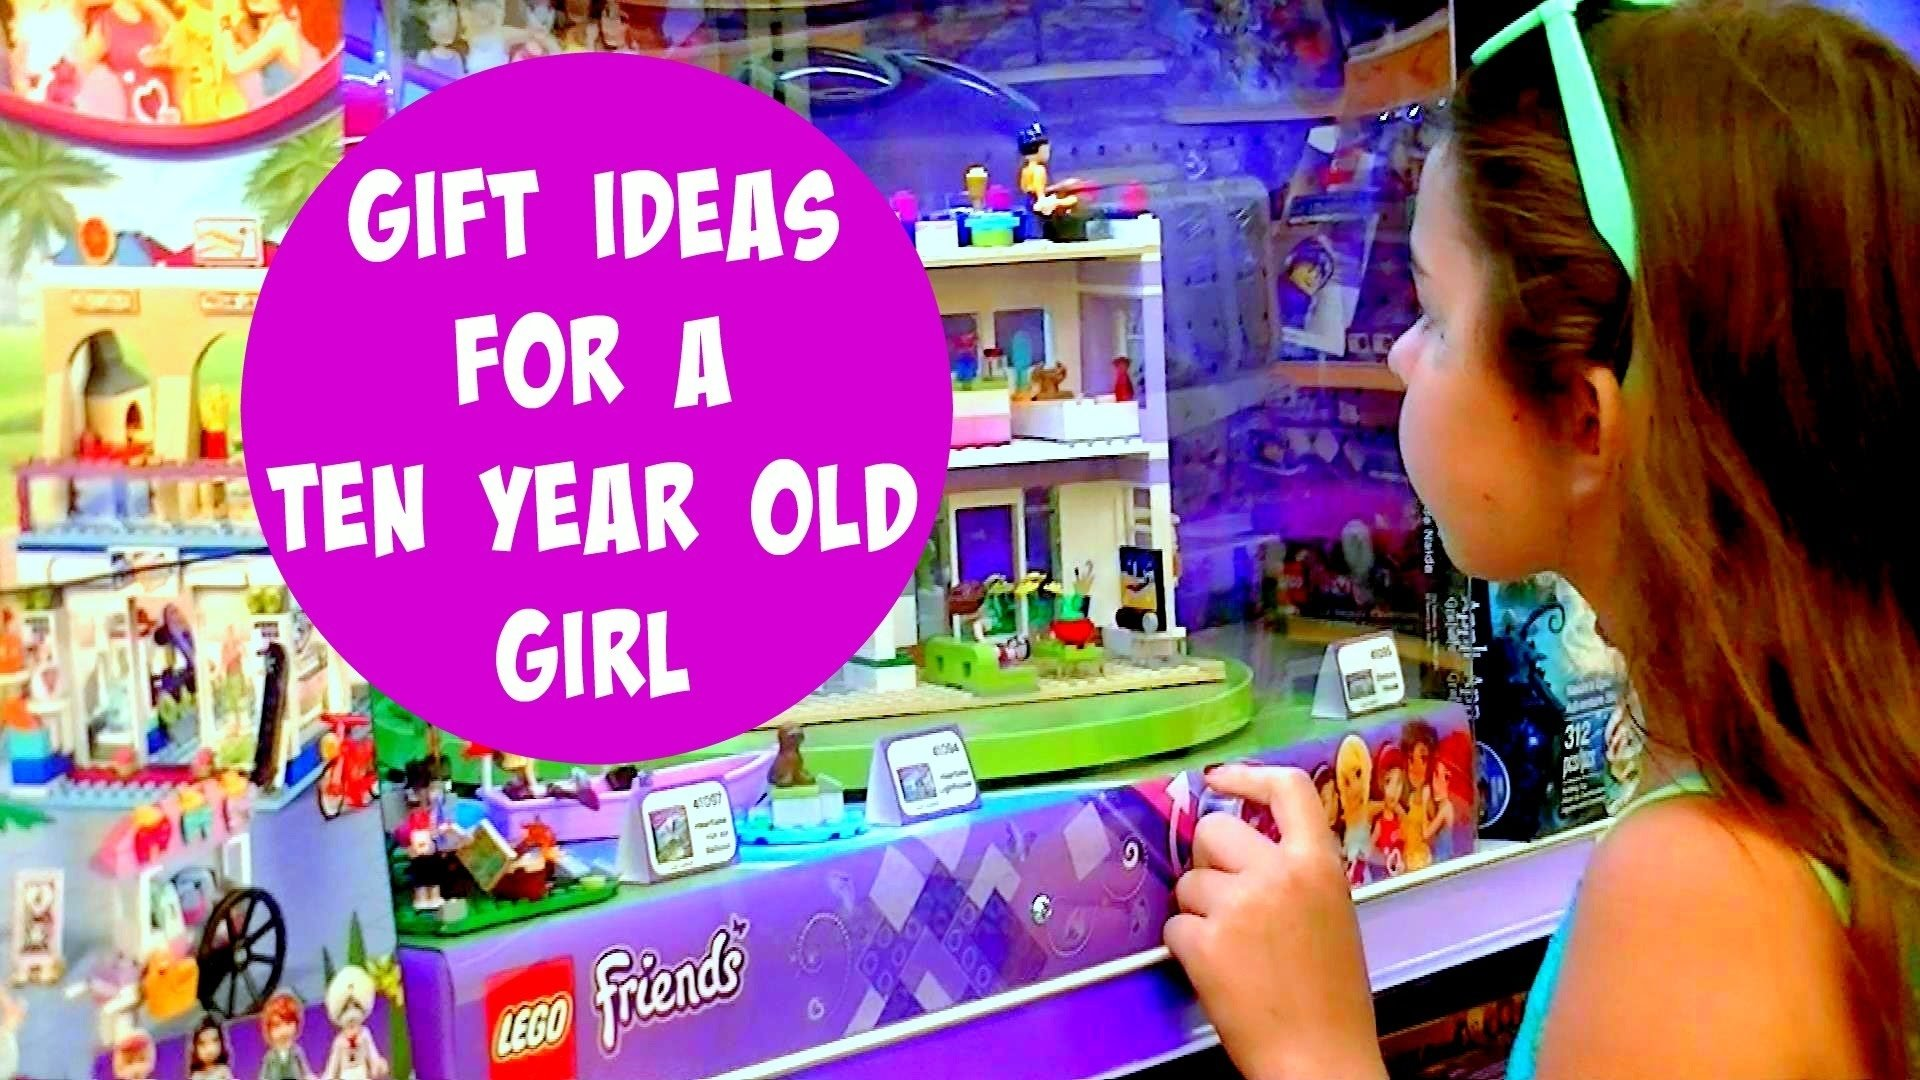 10 Lovable Gift Ideas For 10 Year Old Birthday Girl birthday gift ideas for a 10 year old girl under 30 youtube 7 2021